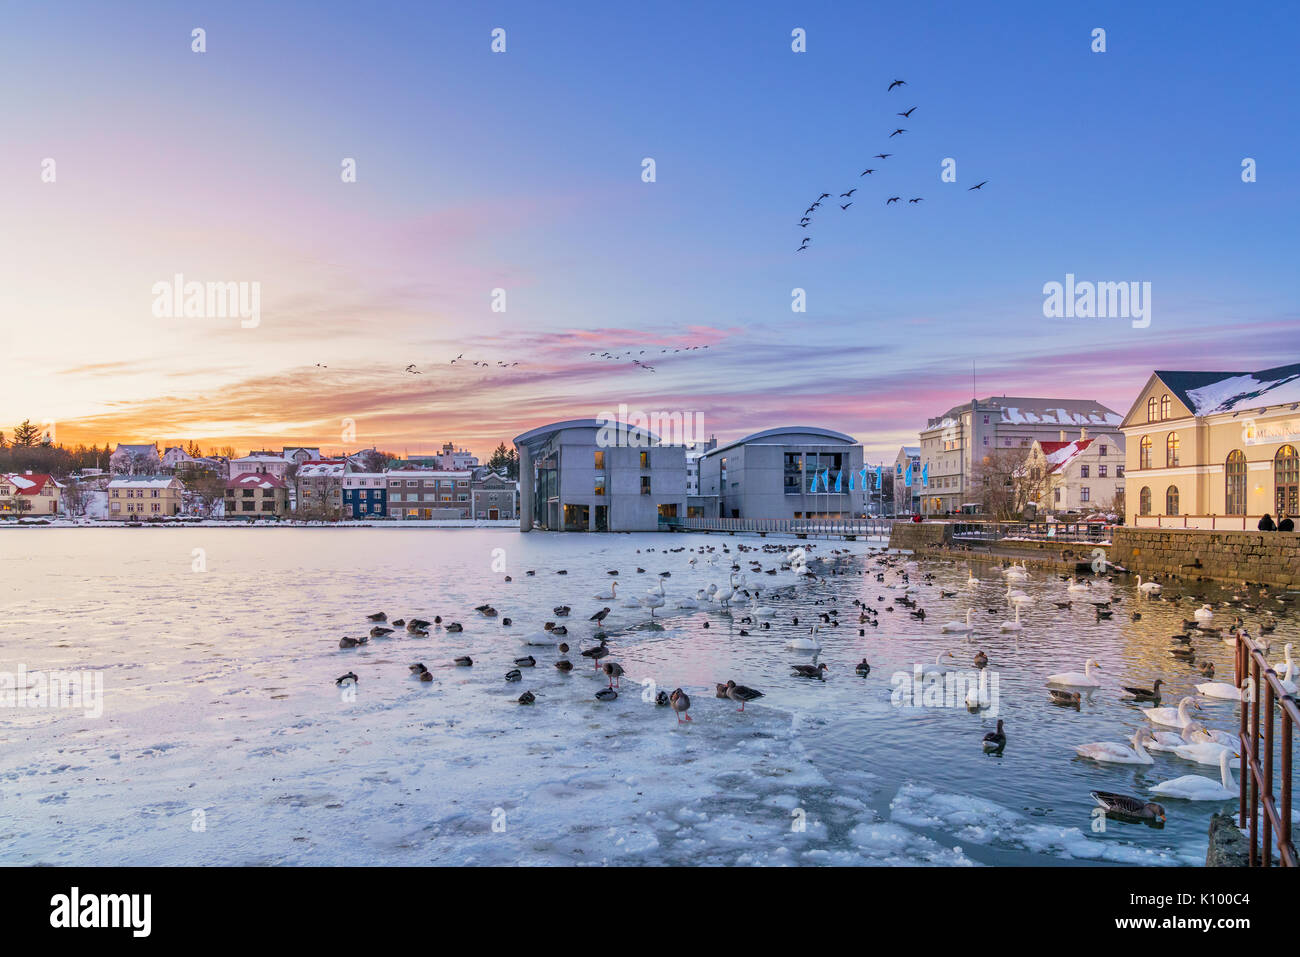 Winter, Reykjavik Pond Frozen, Iceland - Stock Image